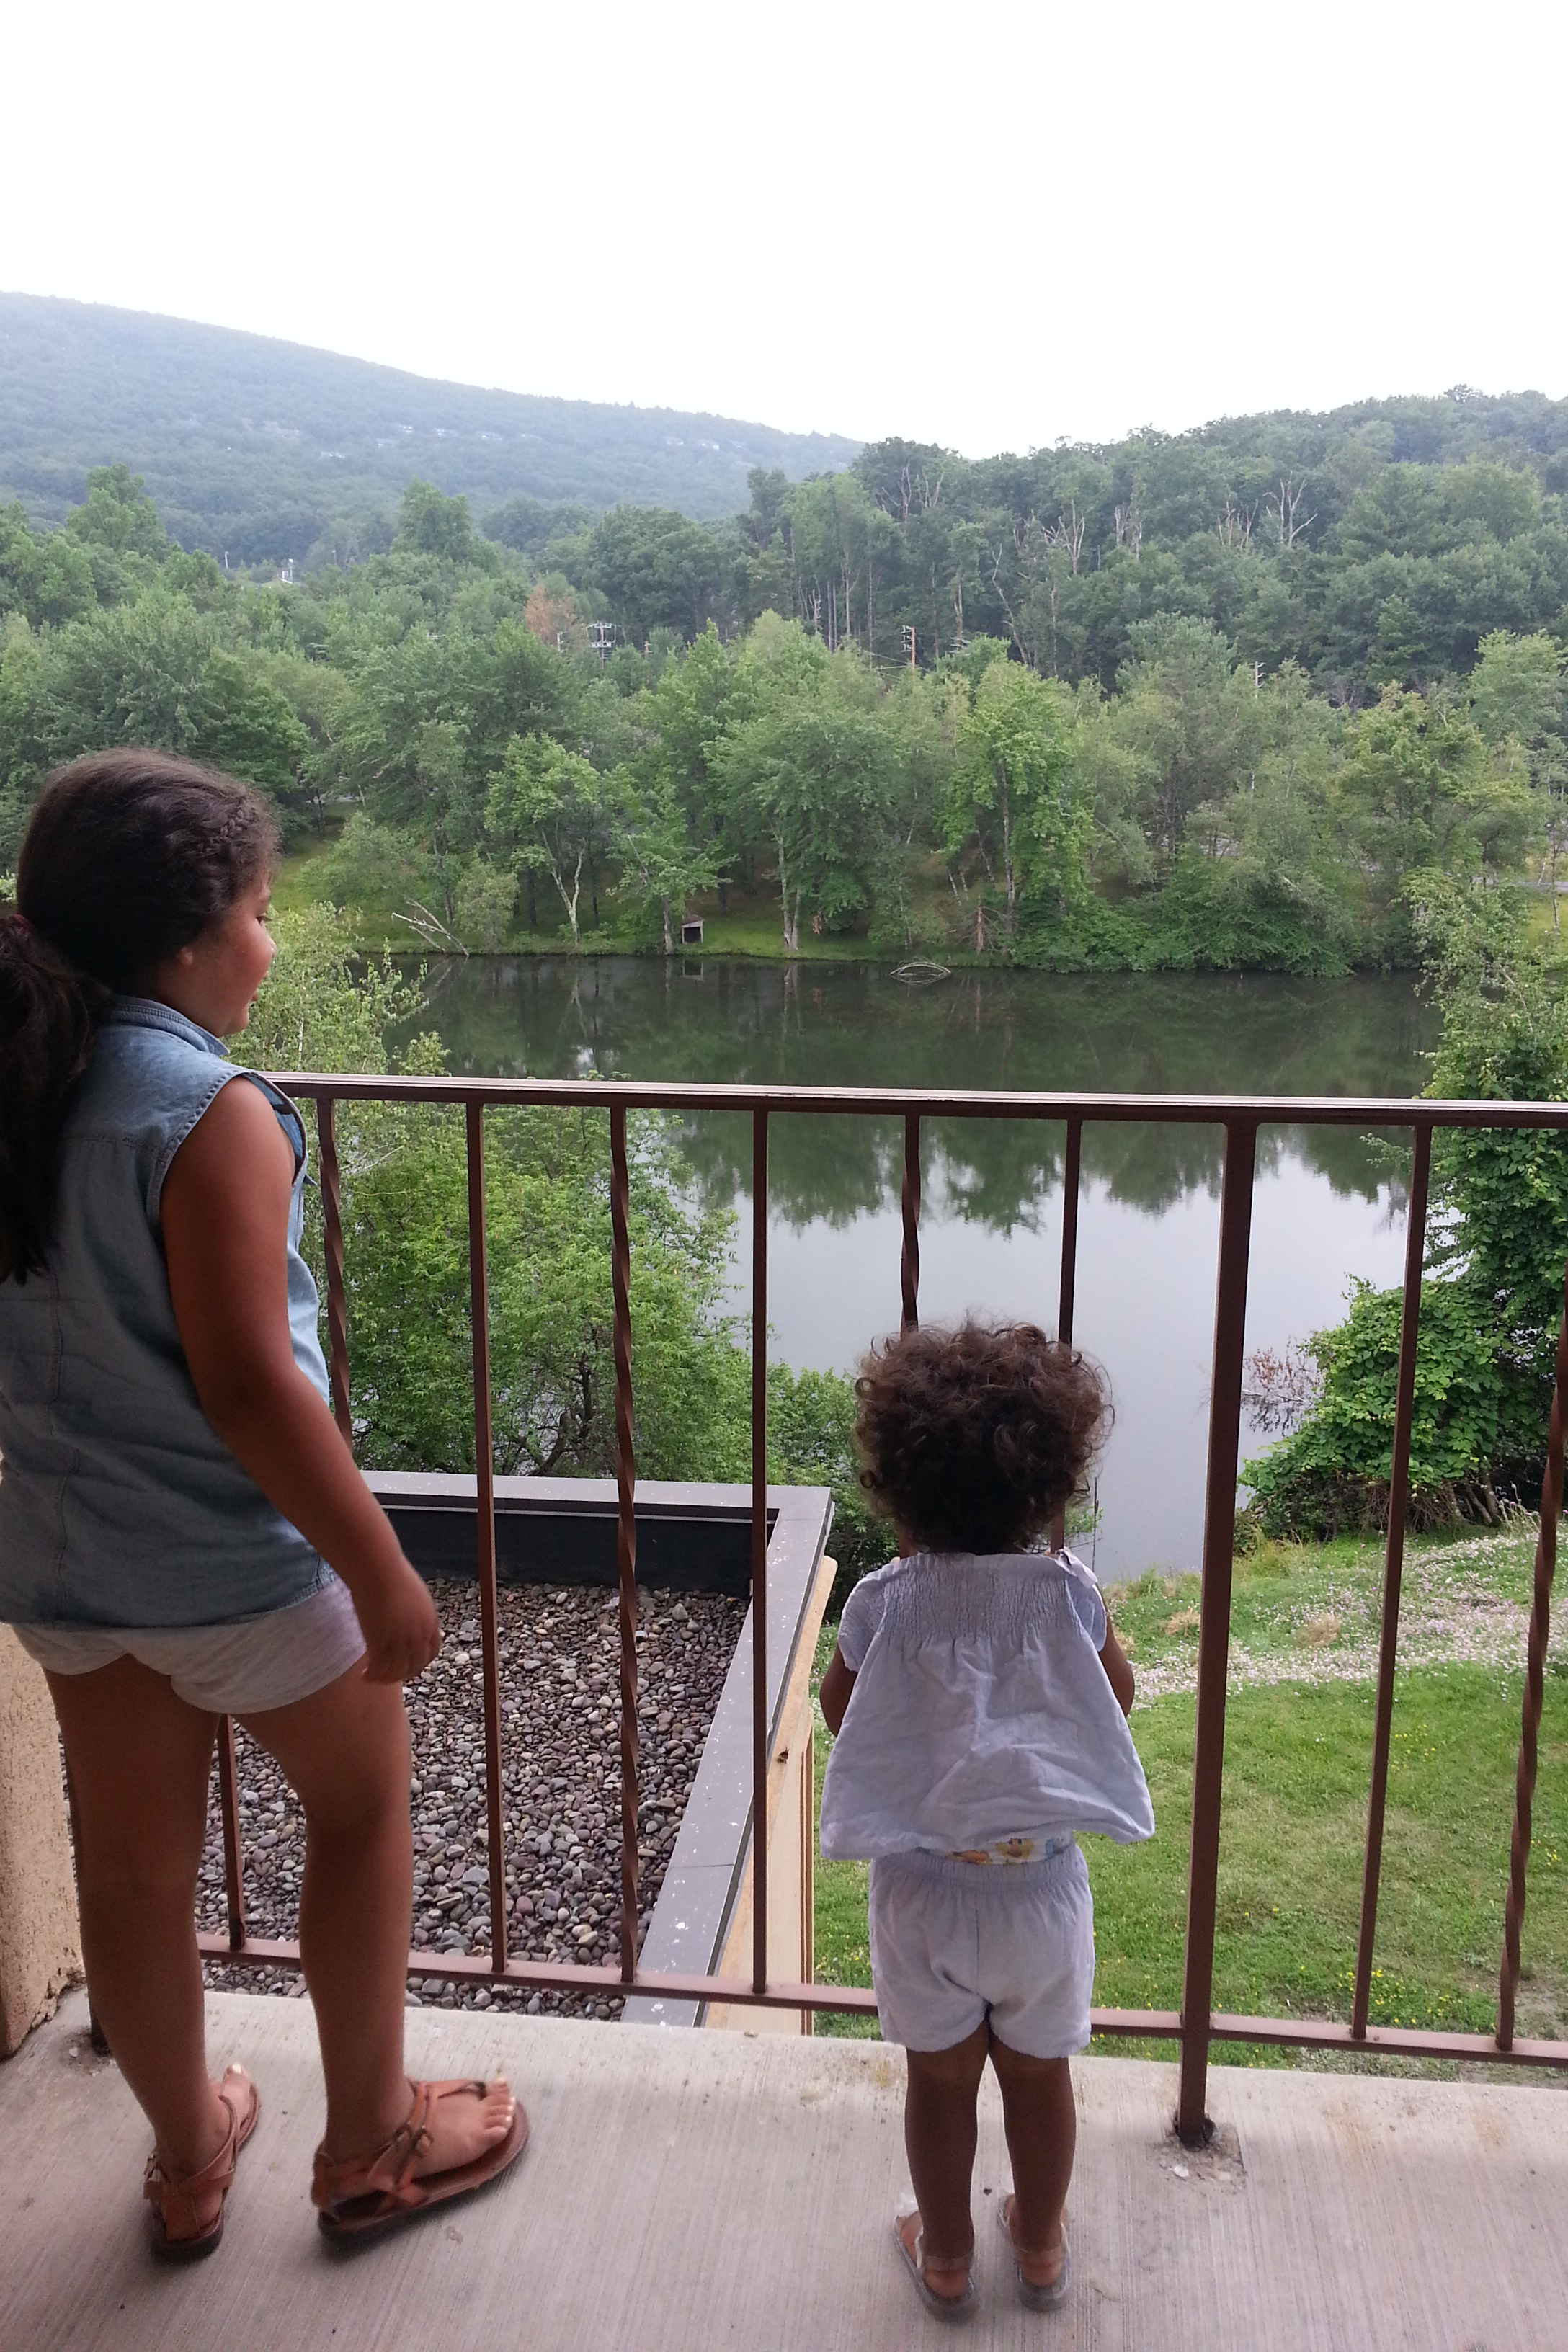 Family time in the Poconos: Camelbeach Waterpark